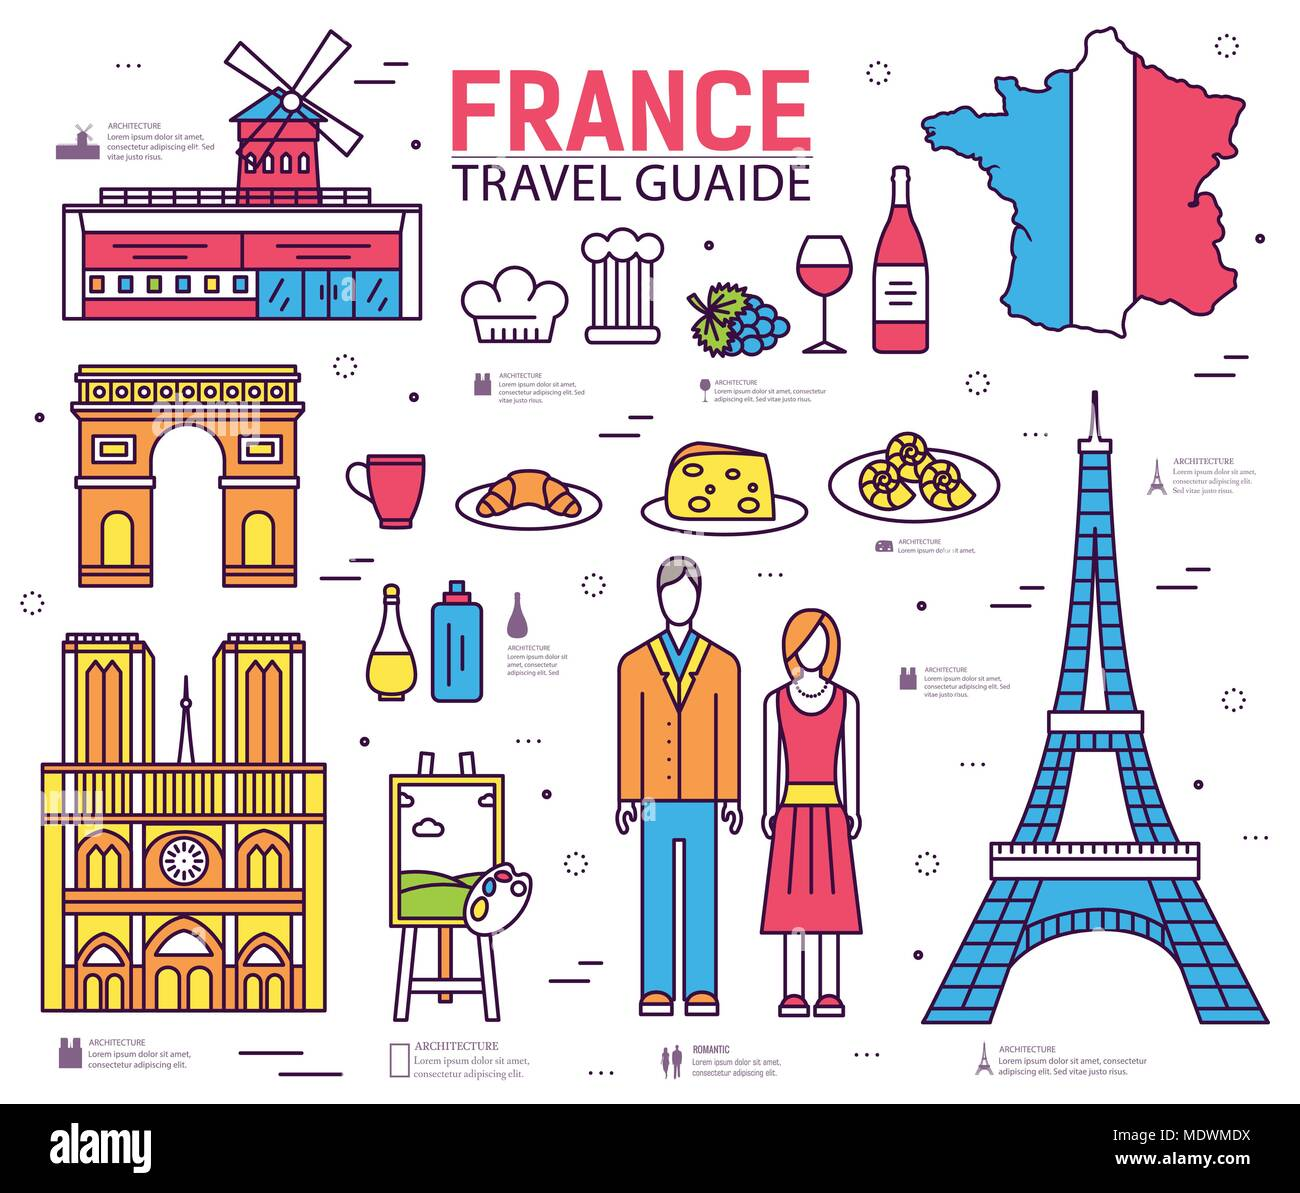 Country France trip guide of goods, places in thin lines style design. Set of architecture, fashion, people, nature background concept.  - Stock Image